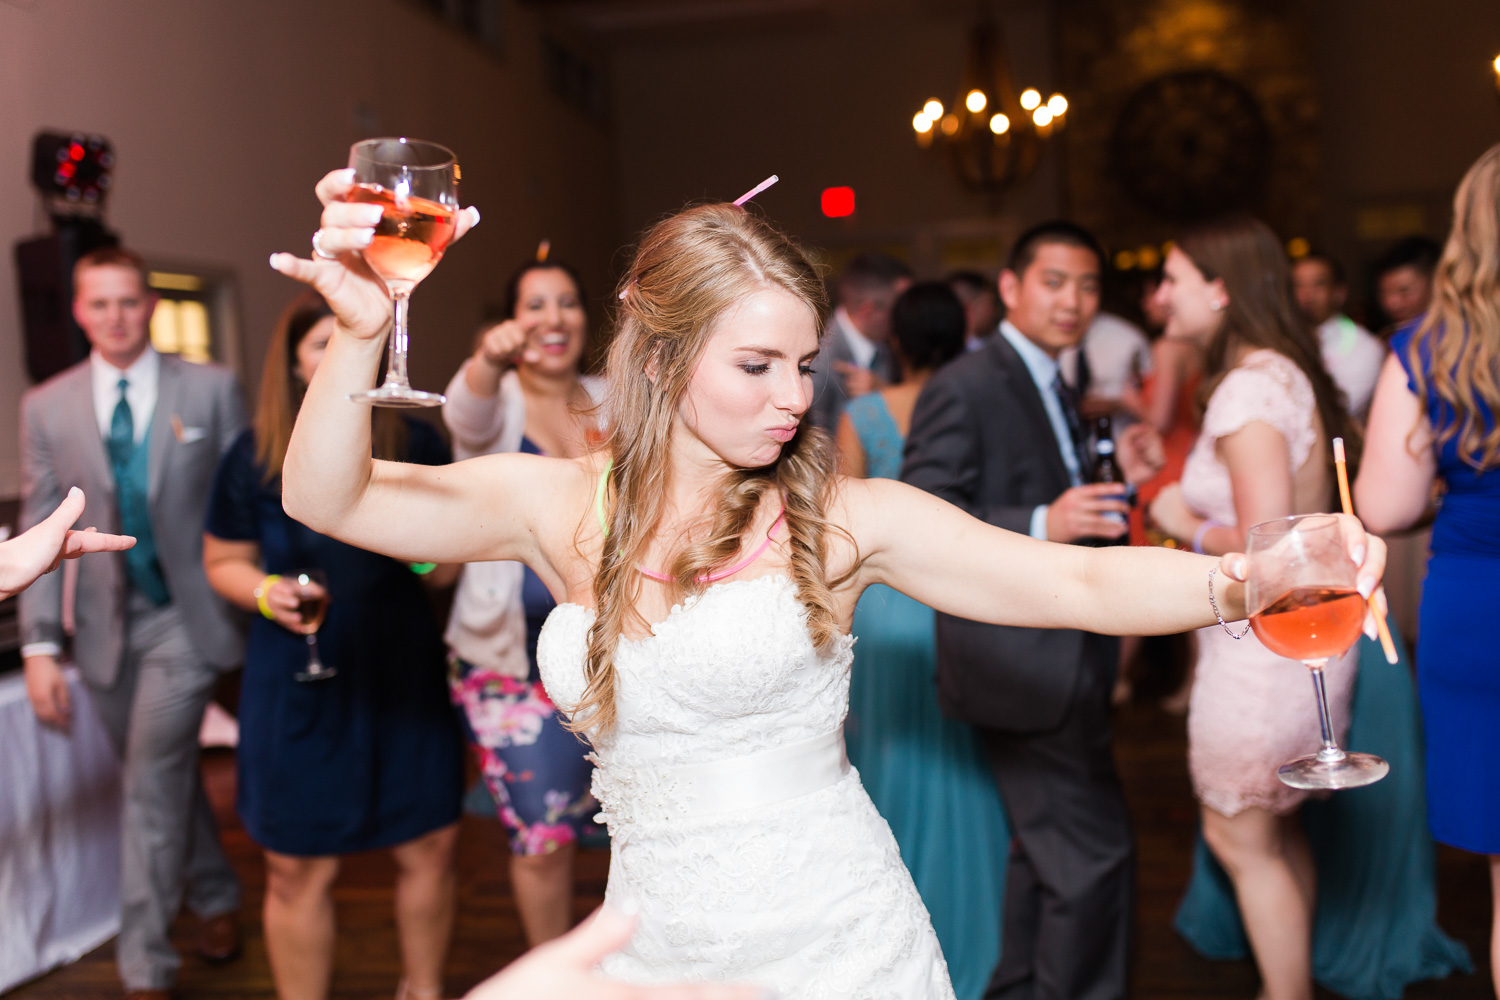 Bride dancing with two glasses of wine